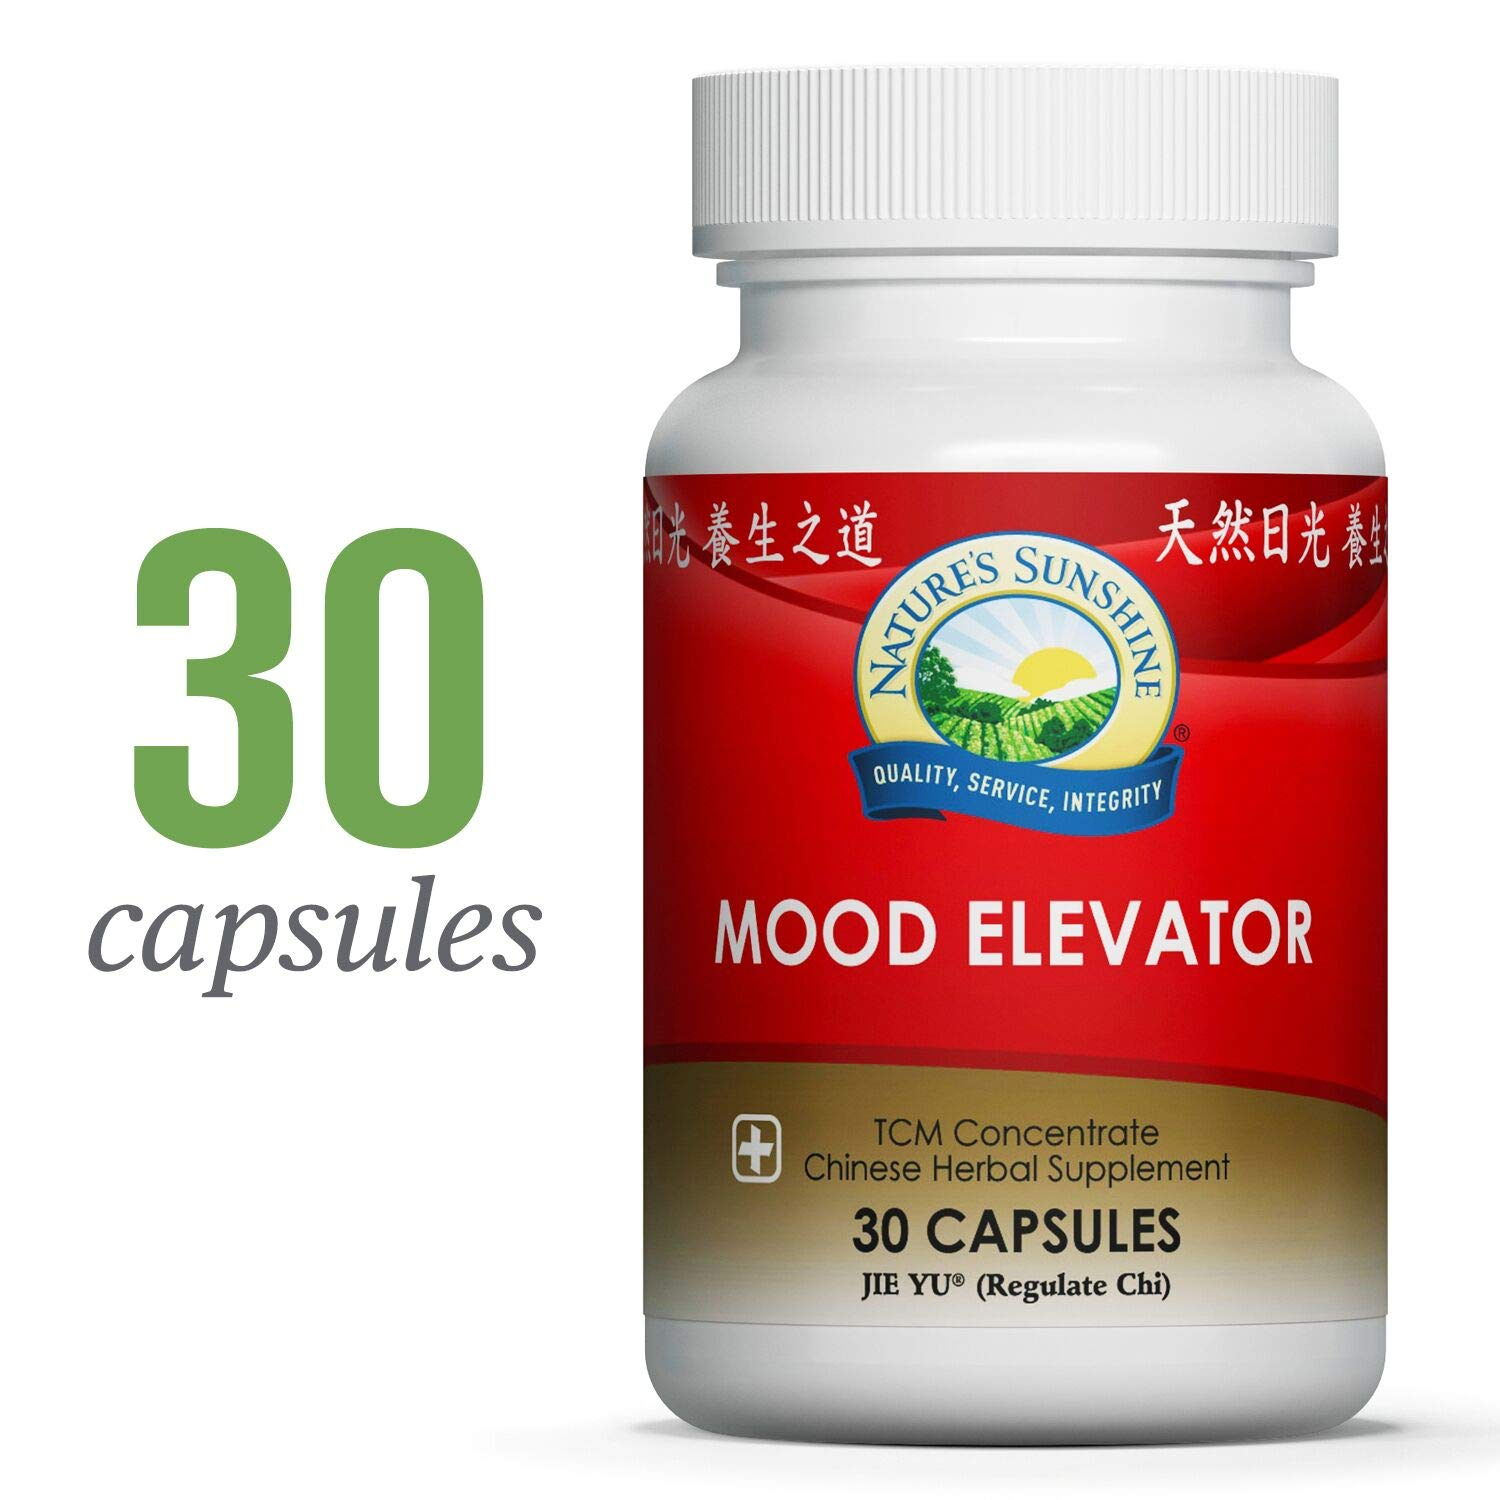 Nature s Sunshine Mood Elevator, Chinese TCM Concentrate, 30 Capsules Concentrated Blend of Chinese Herbs That Strengthen Liver Function, Support Mood, and Improve Overall Sense of Well-Being